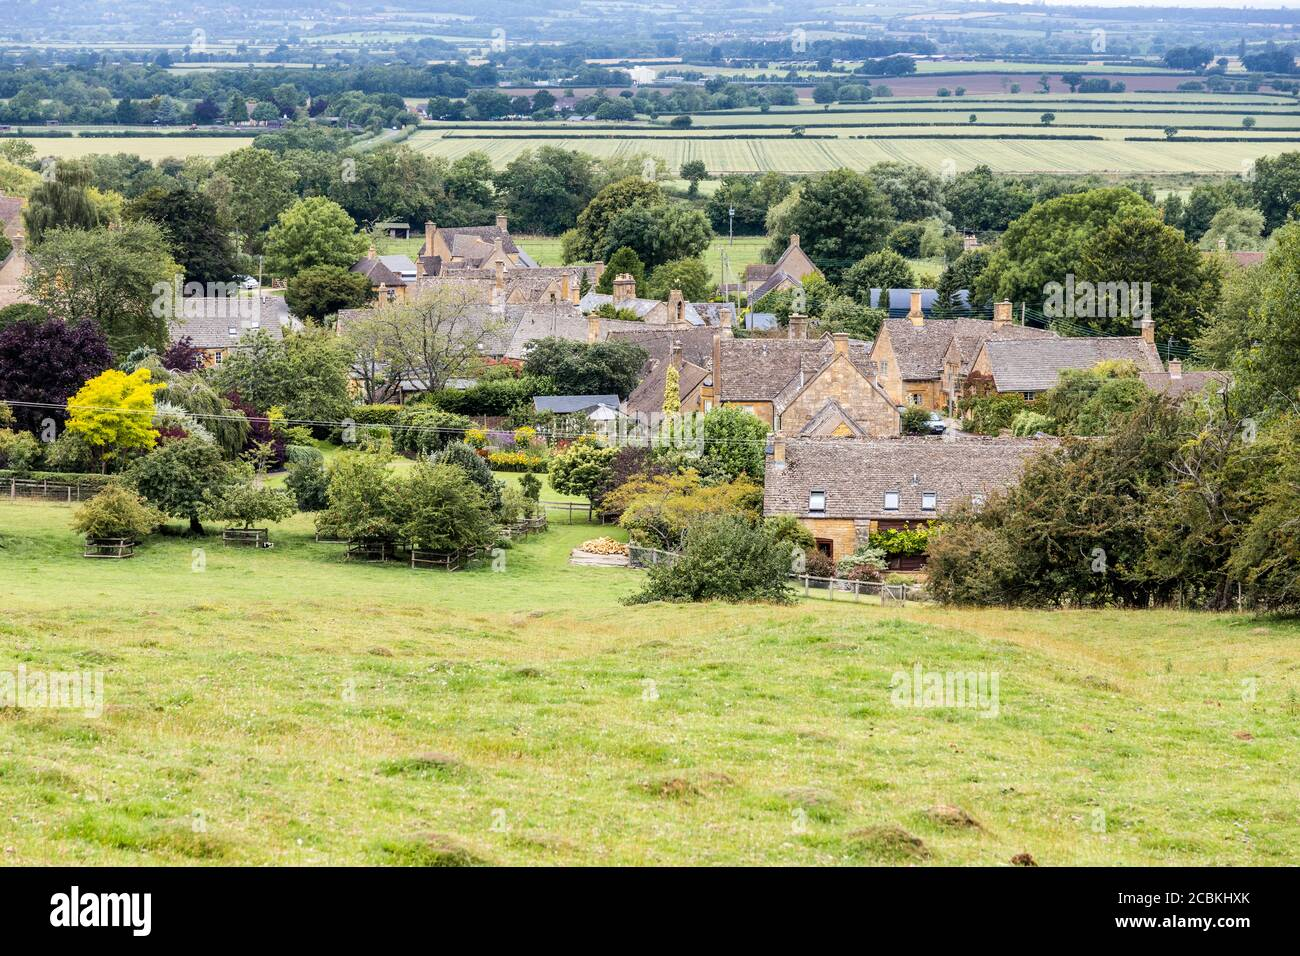 The Cotswold village of Laverton lying at the foot of the Cotswold scarp in Gloucestershire, UK Stock Photo